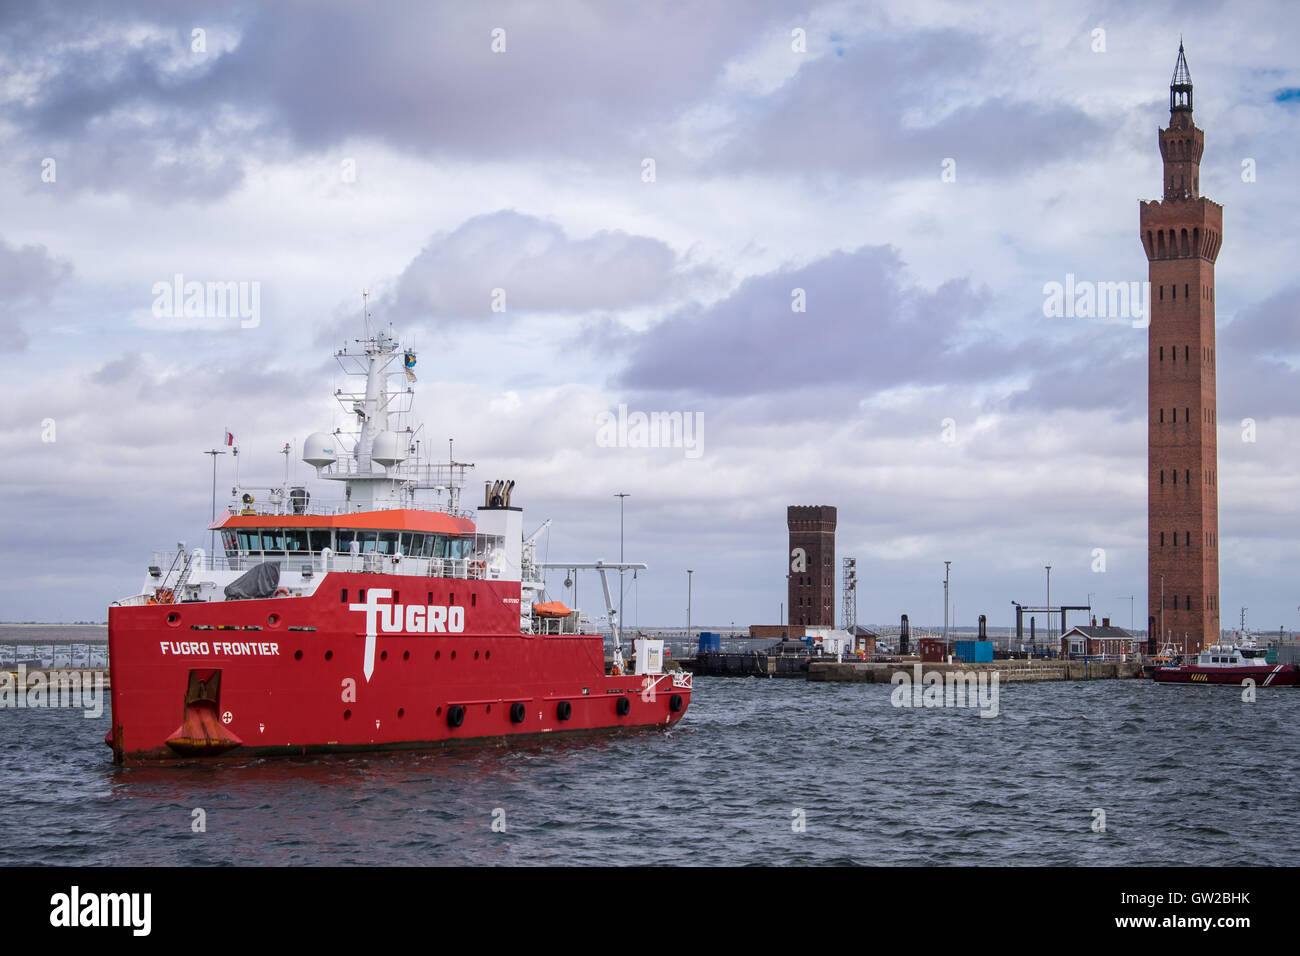 Survey vessel Fugro Frontier in Grimsby Royal Dock during the Hornsea Project One UXO survey - Stock Image